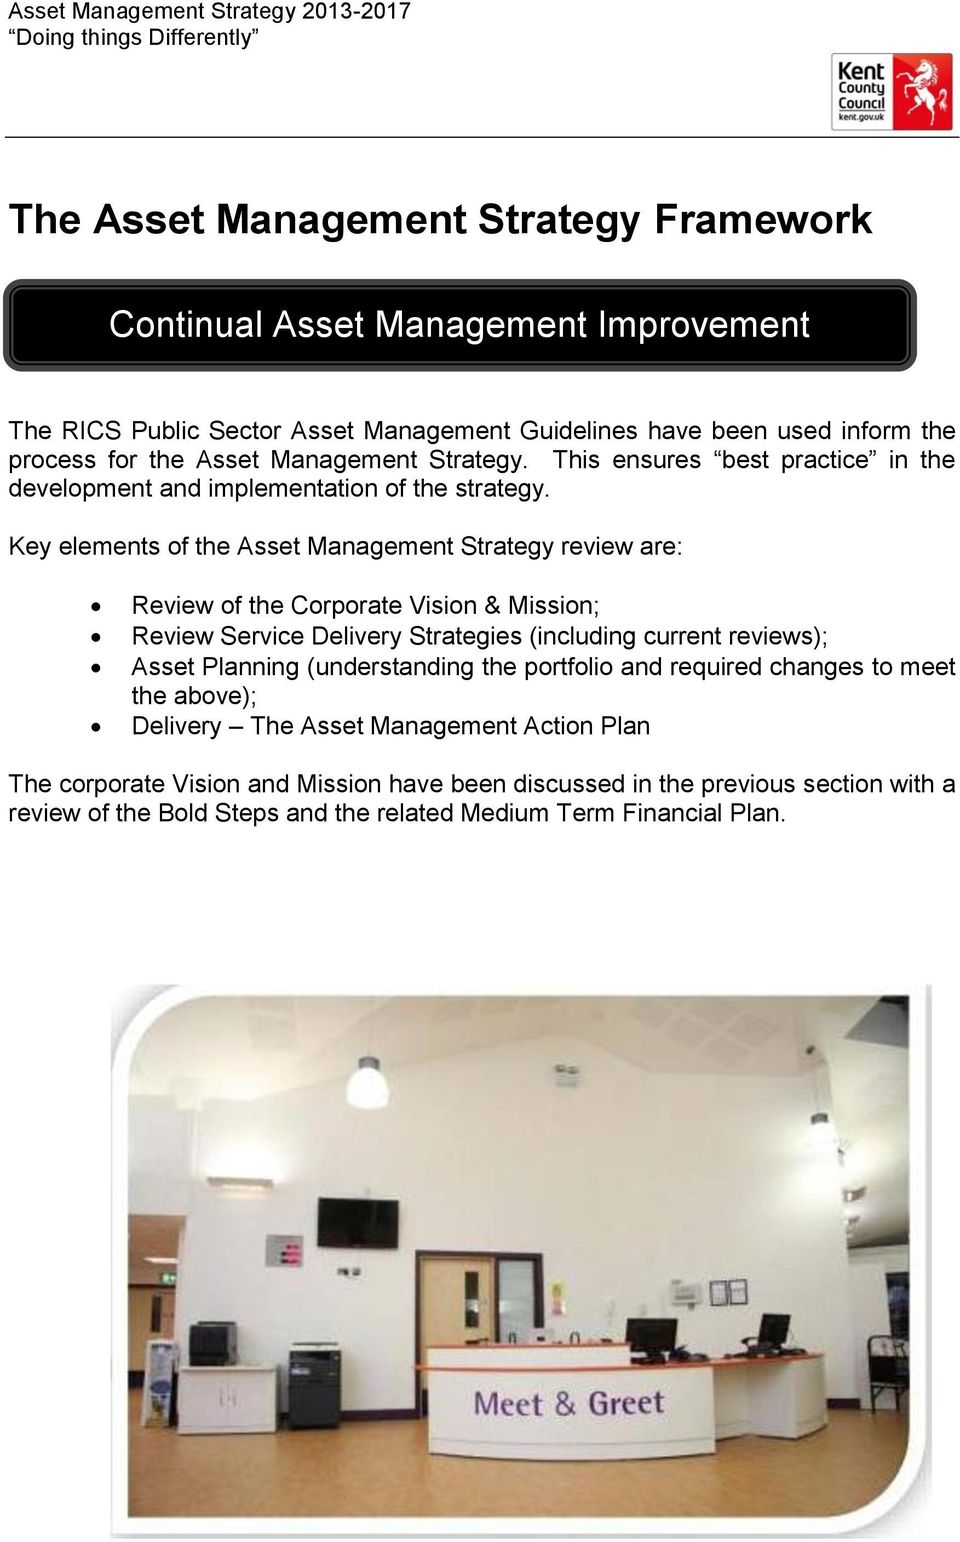 Key elements of the Asset Management Strategy review are: Review of the Corporate Vision & Mission; Review Service Delivery Strategies (including current reviews); Asset Planning